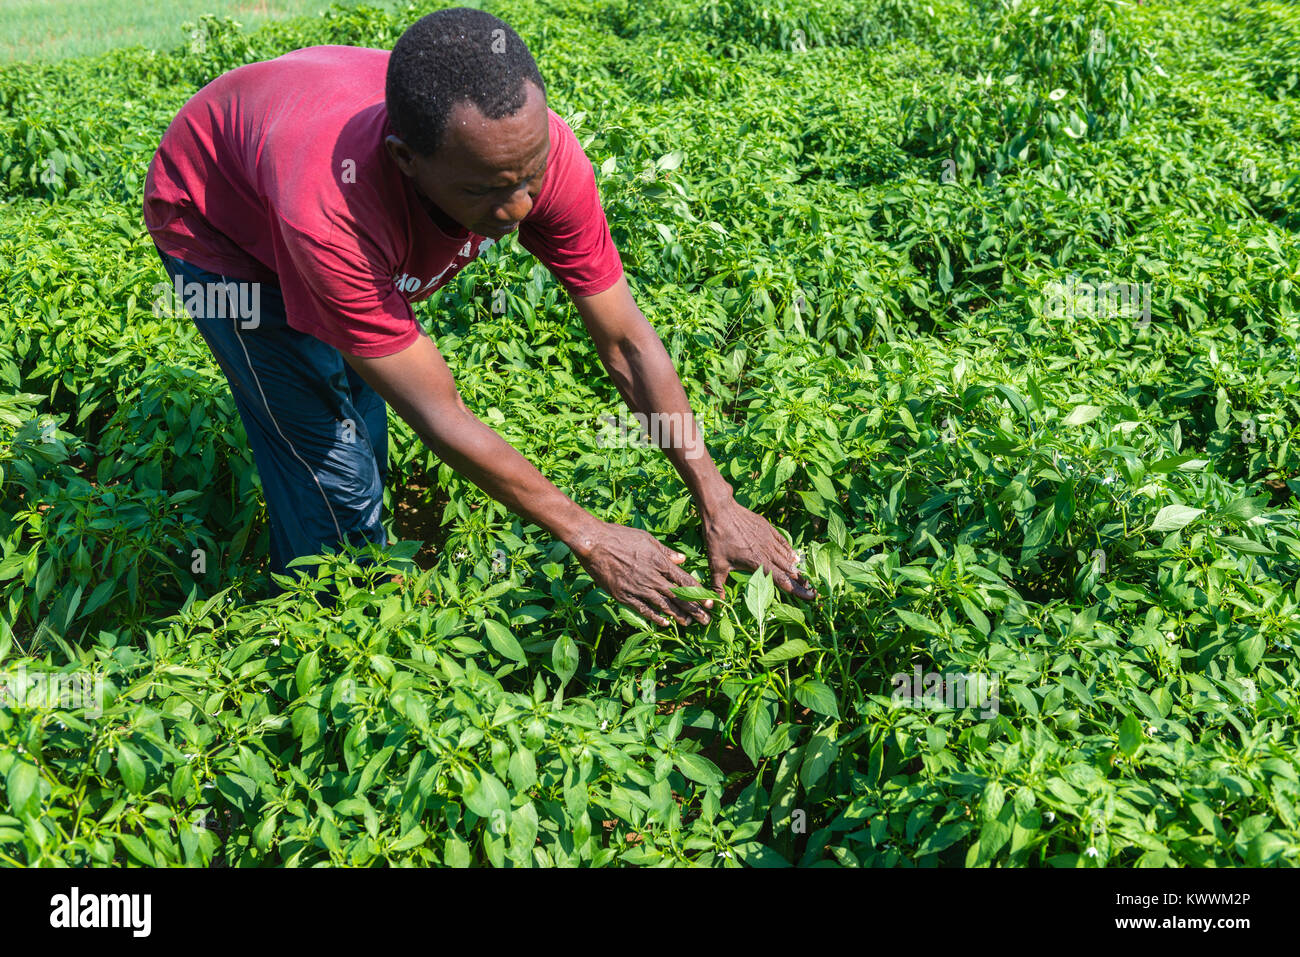 Farmer Michael Gawaga looking after his green pepper fields, Anloga, Volta Region, Ghana - Stock Image